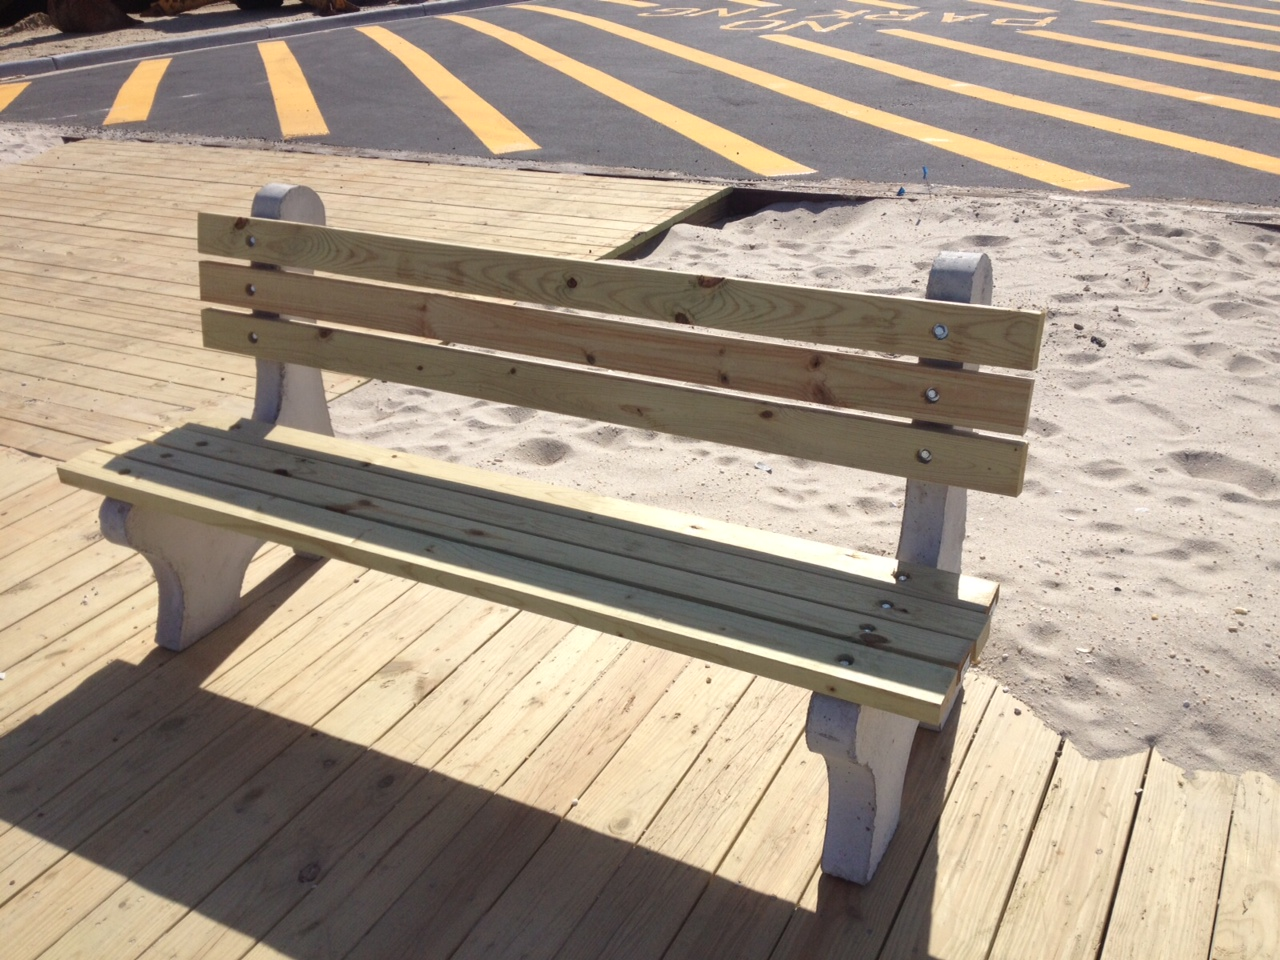 CONCRETE BENCHES Totowa Concrete Products - Pressure treated wood picnic table